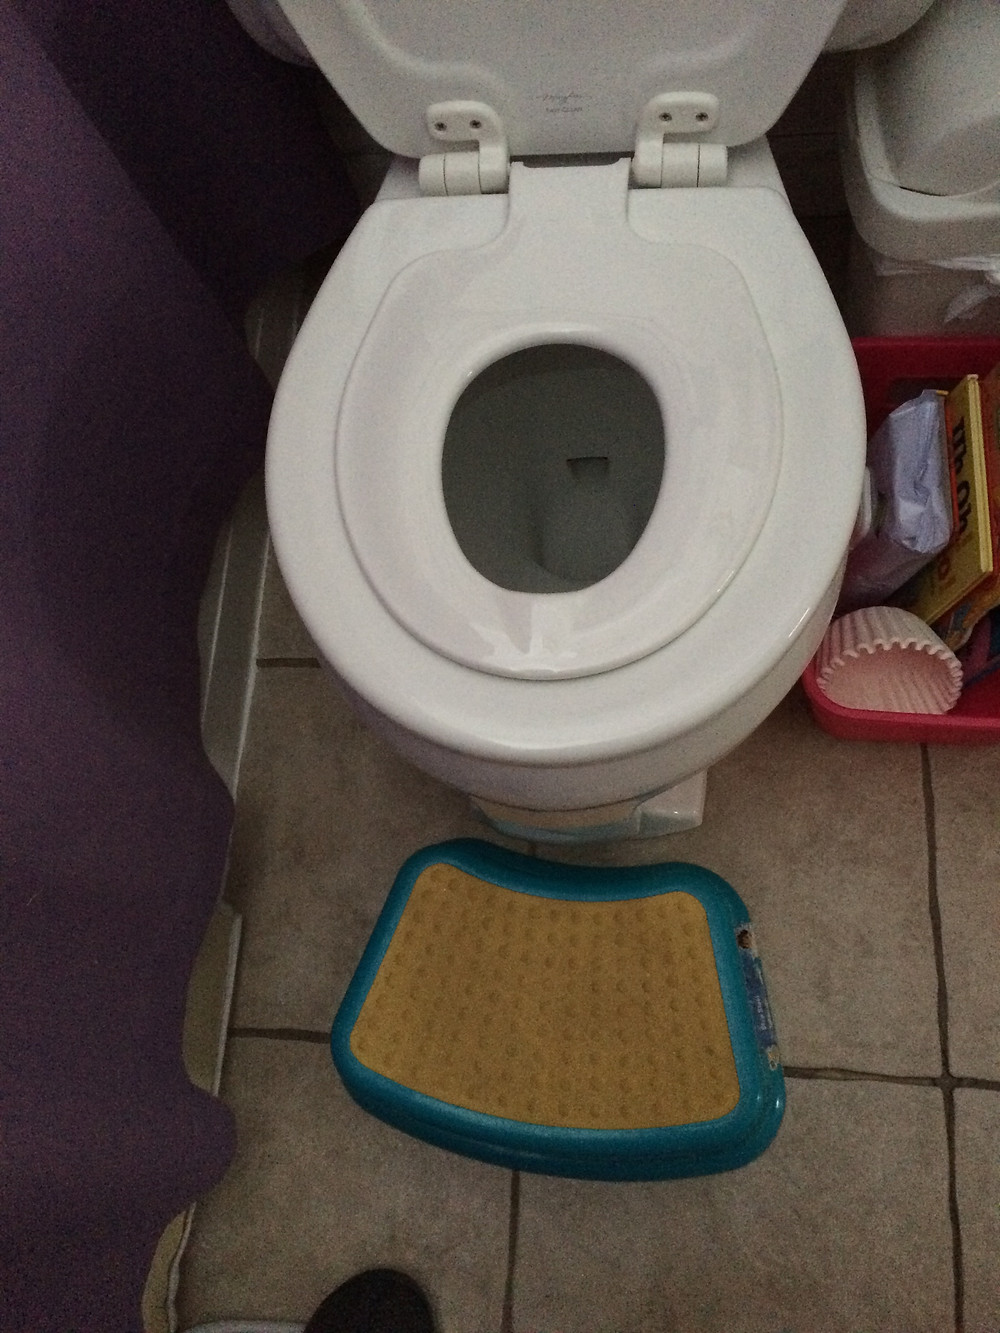 Built in potty seat